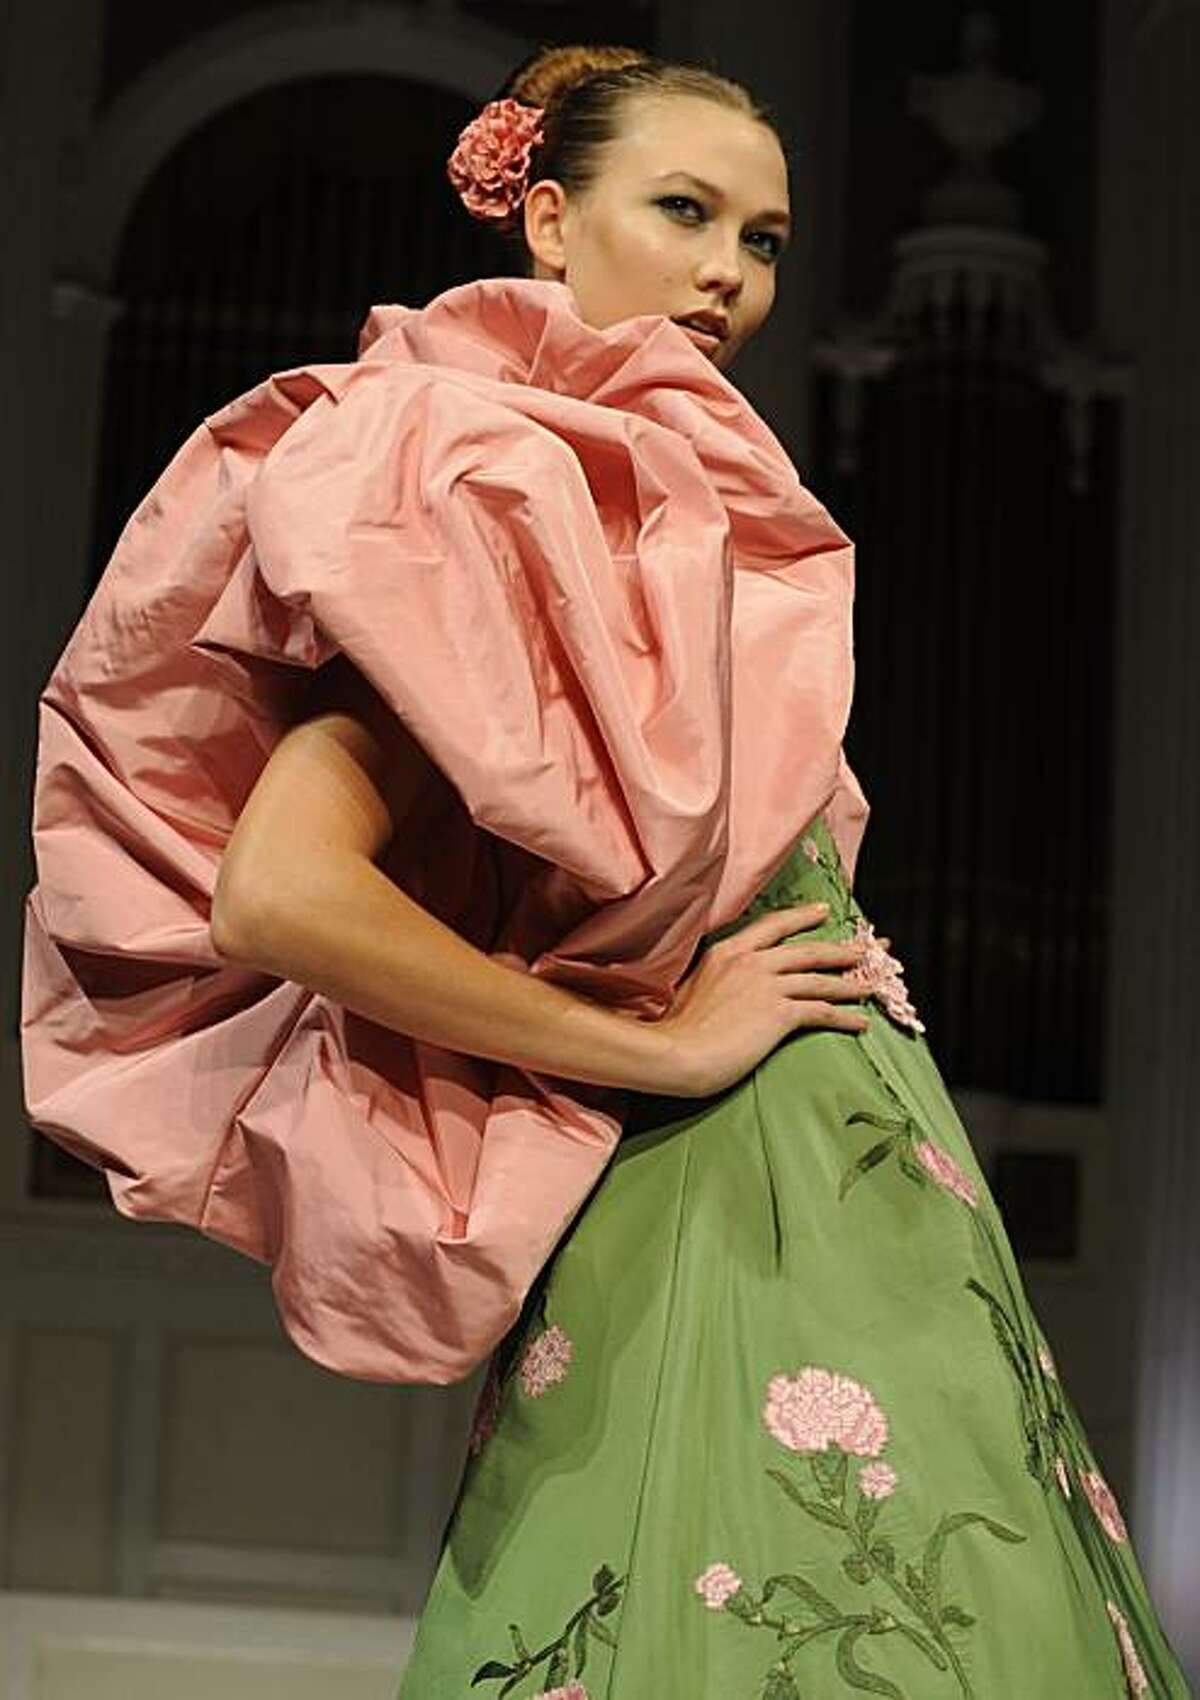 The Oscar de la Renta spring 2011 collection is modeled during Fashion Week, Thursday Sept. 16, 2010, in New York.